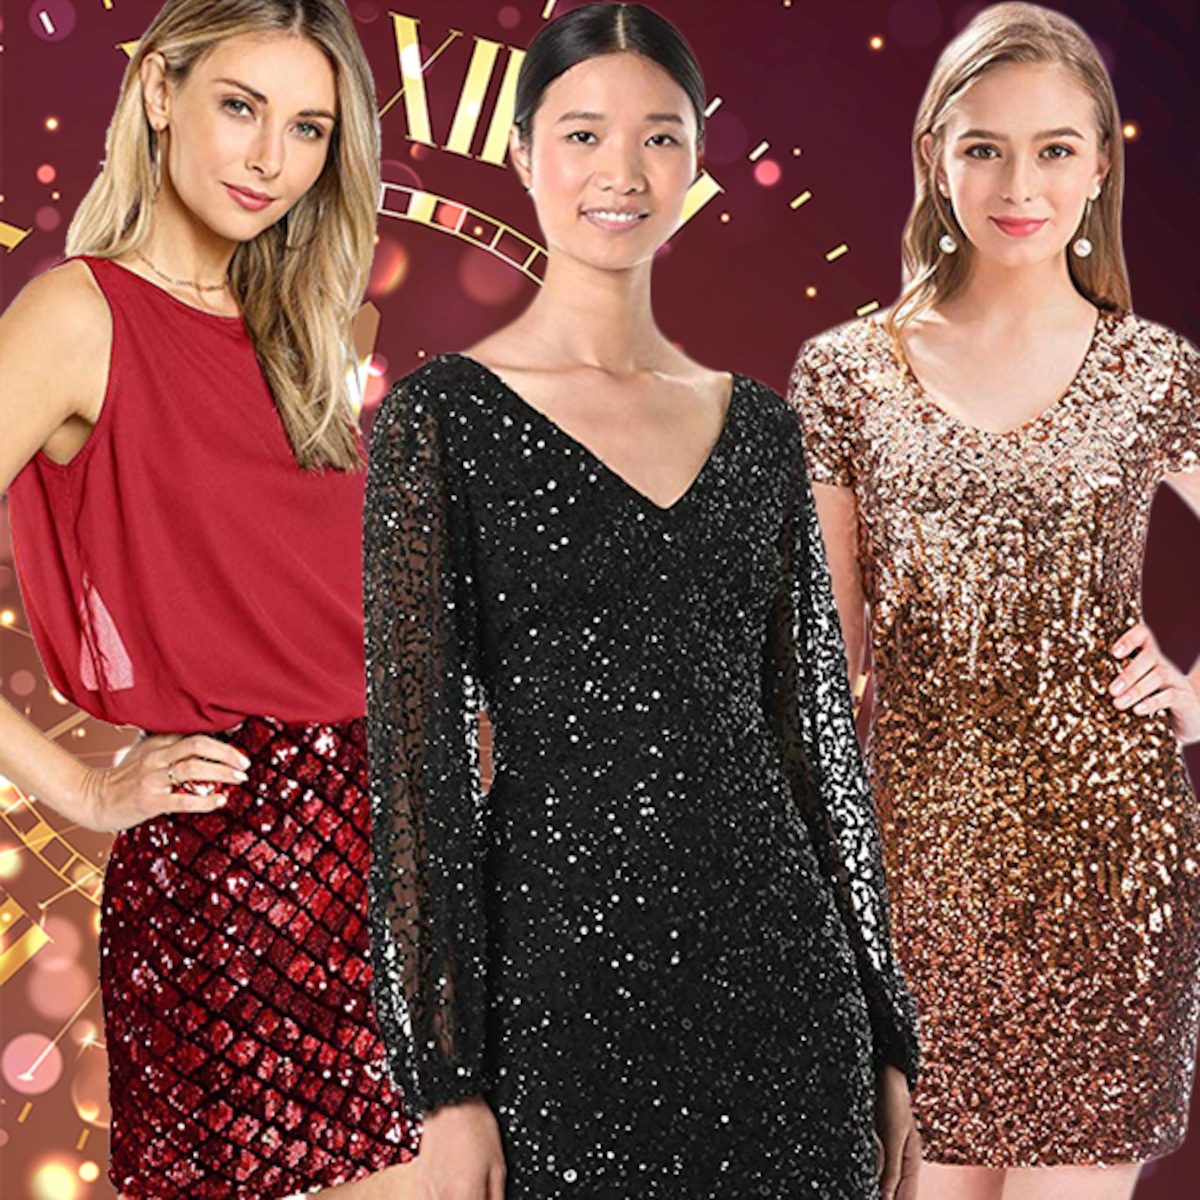 Amazon Eve Topless these 9 new year's eve dresses & jumpsuits are top-rated on